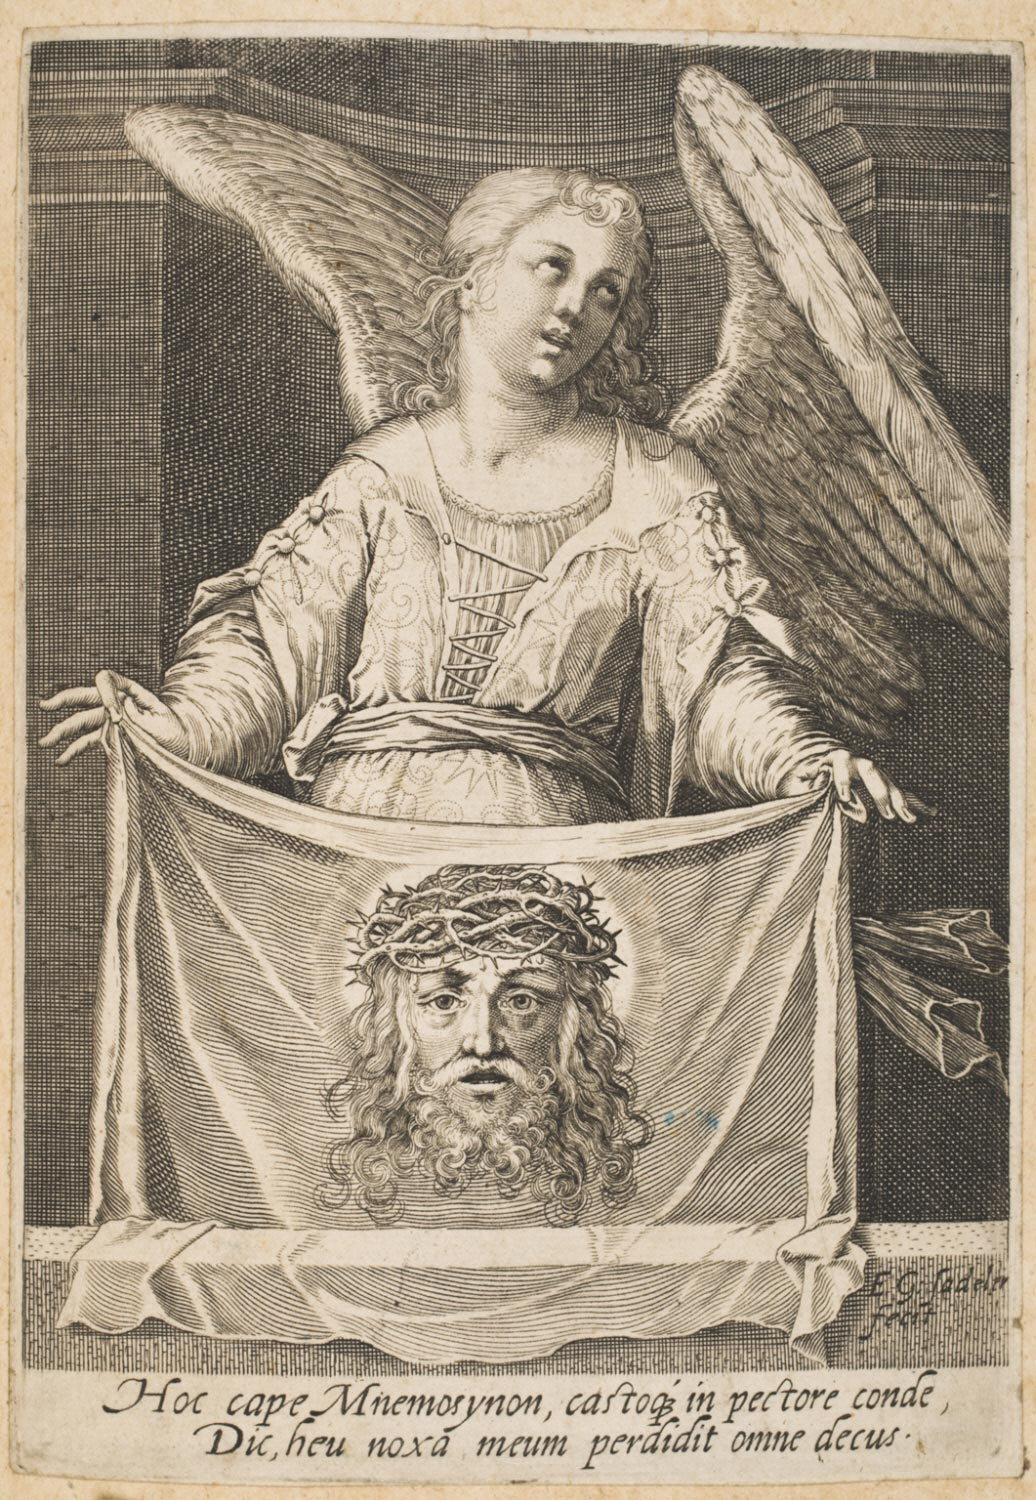 Angel with Veronica's Veil